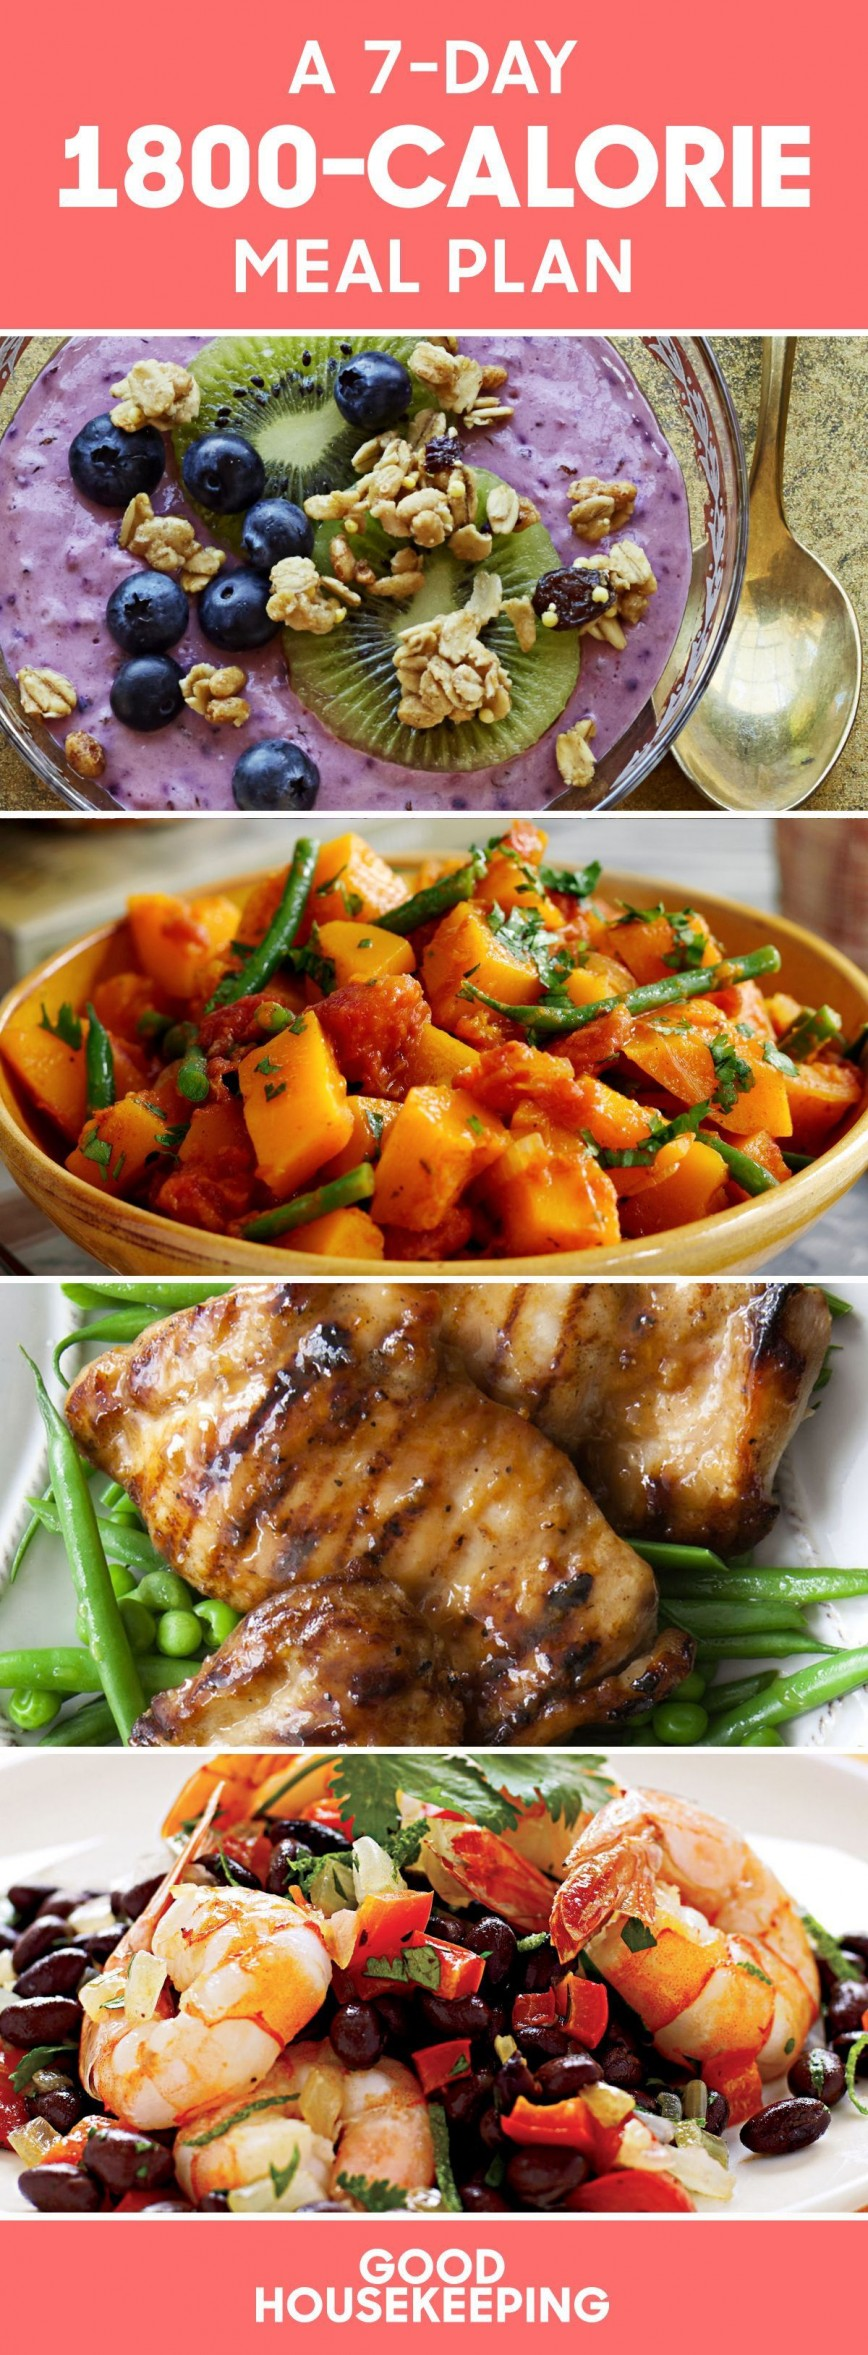 003 Simple Sample 1800 Calorie Meal Plan Pdf Highest Quality 868